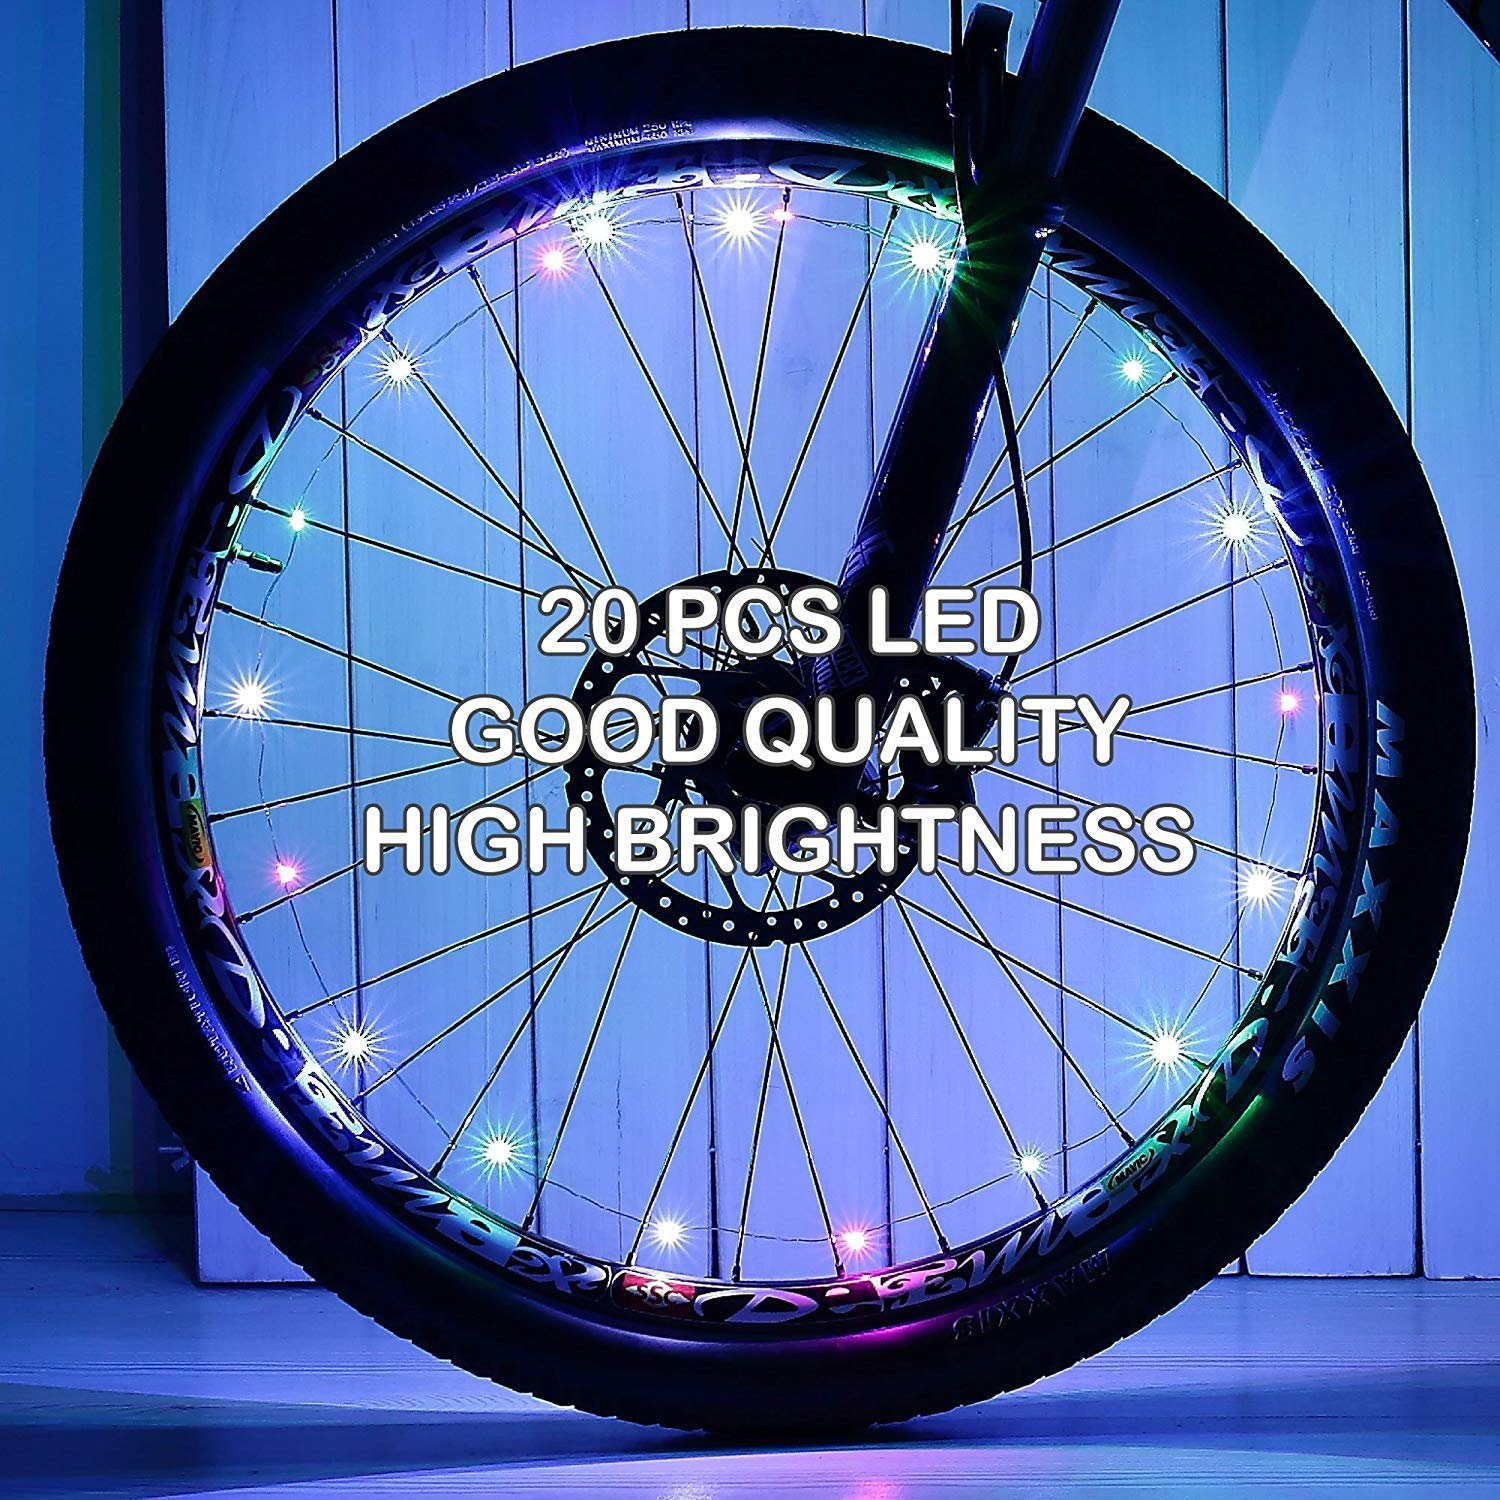 2 Pack Waterproof Bright Bicycle Tire Light Strip, Safety Spoke Lights, Cool Bike Accessories, Light Up Wheels, Safer Bicycle Spokes & Rims Light - Easy to install, No tools Needed,(2 Tiers Pack) by Cozy Homy (Image #8)